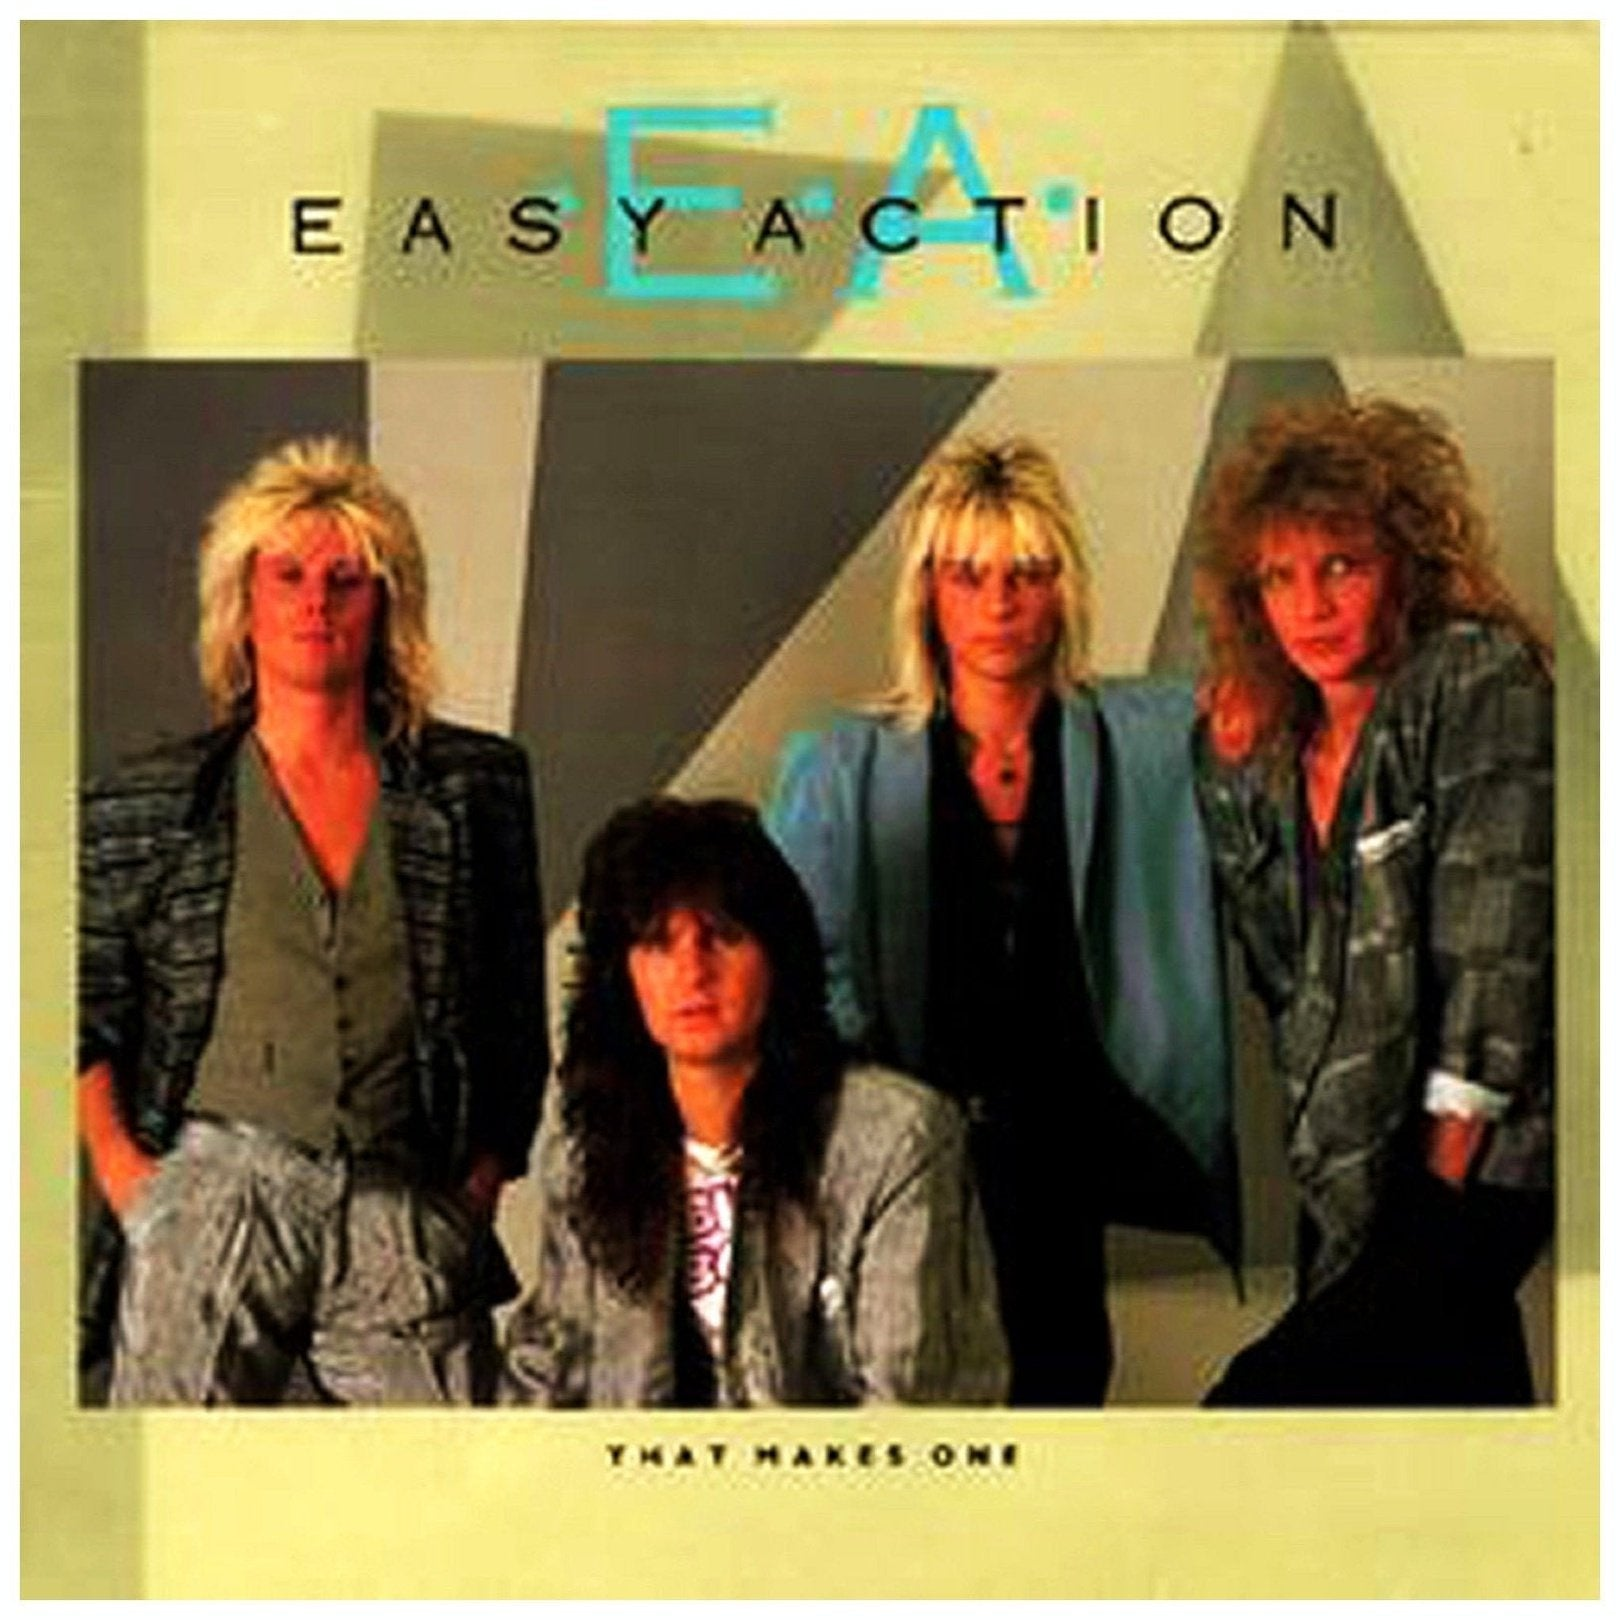 Easy Action - Easy Action - That Makes One - Cd